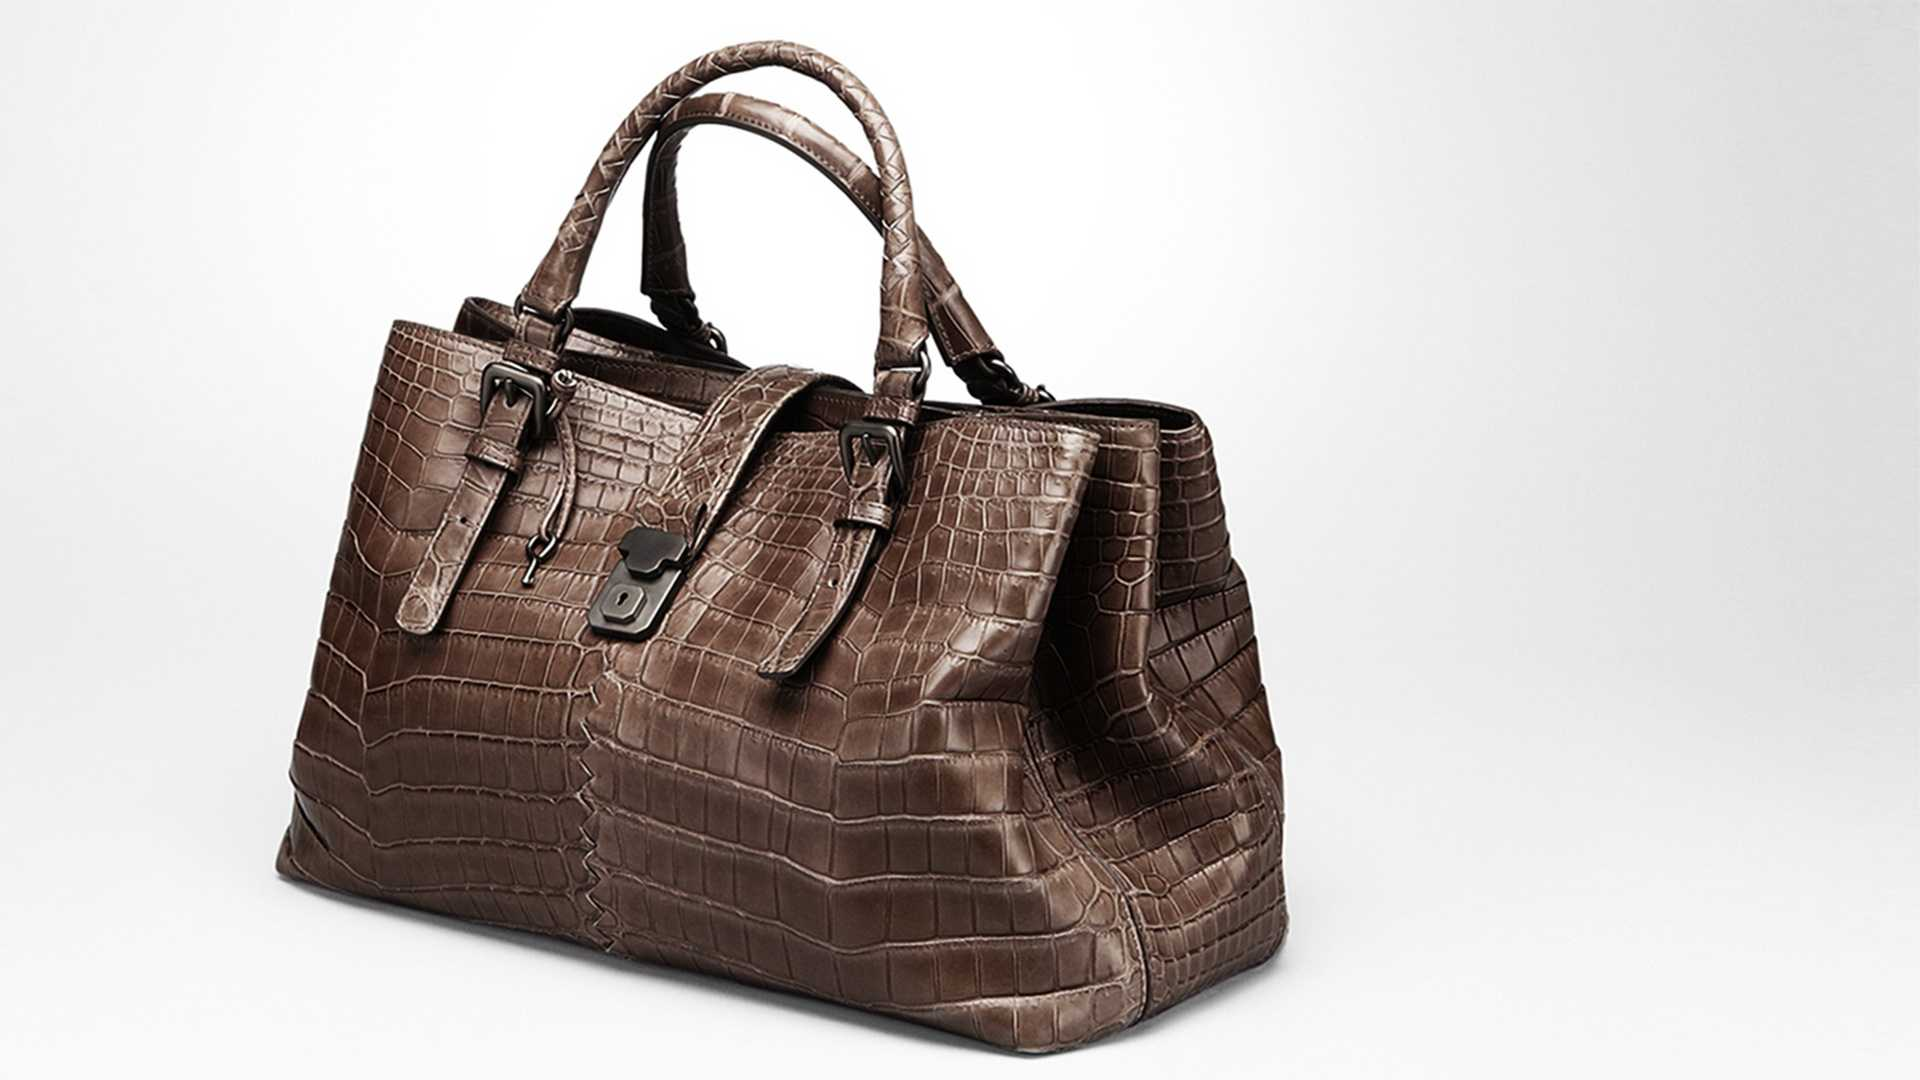 This Edoardo soft crocodile fume roma bag costs $29,600.